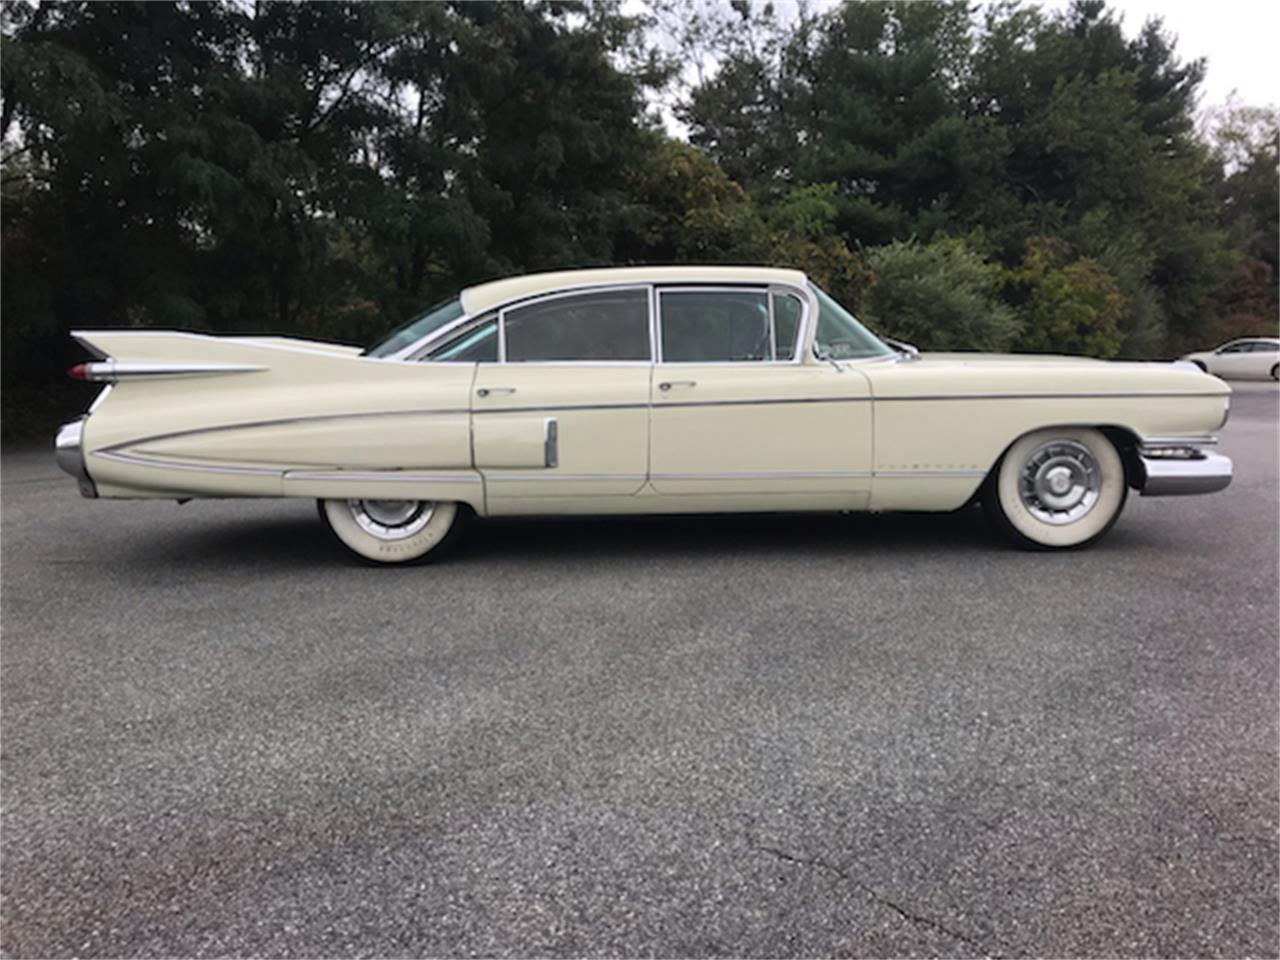 Large Picture of '59 Cadillac Fleetwood located in Massachusetts - ONYU